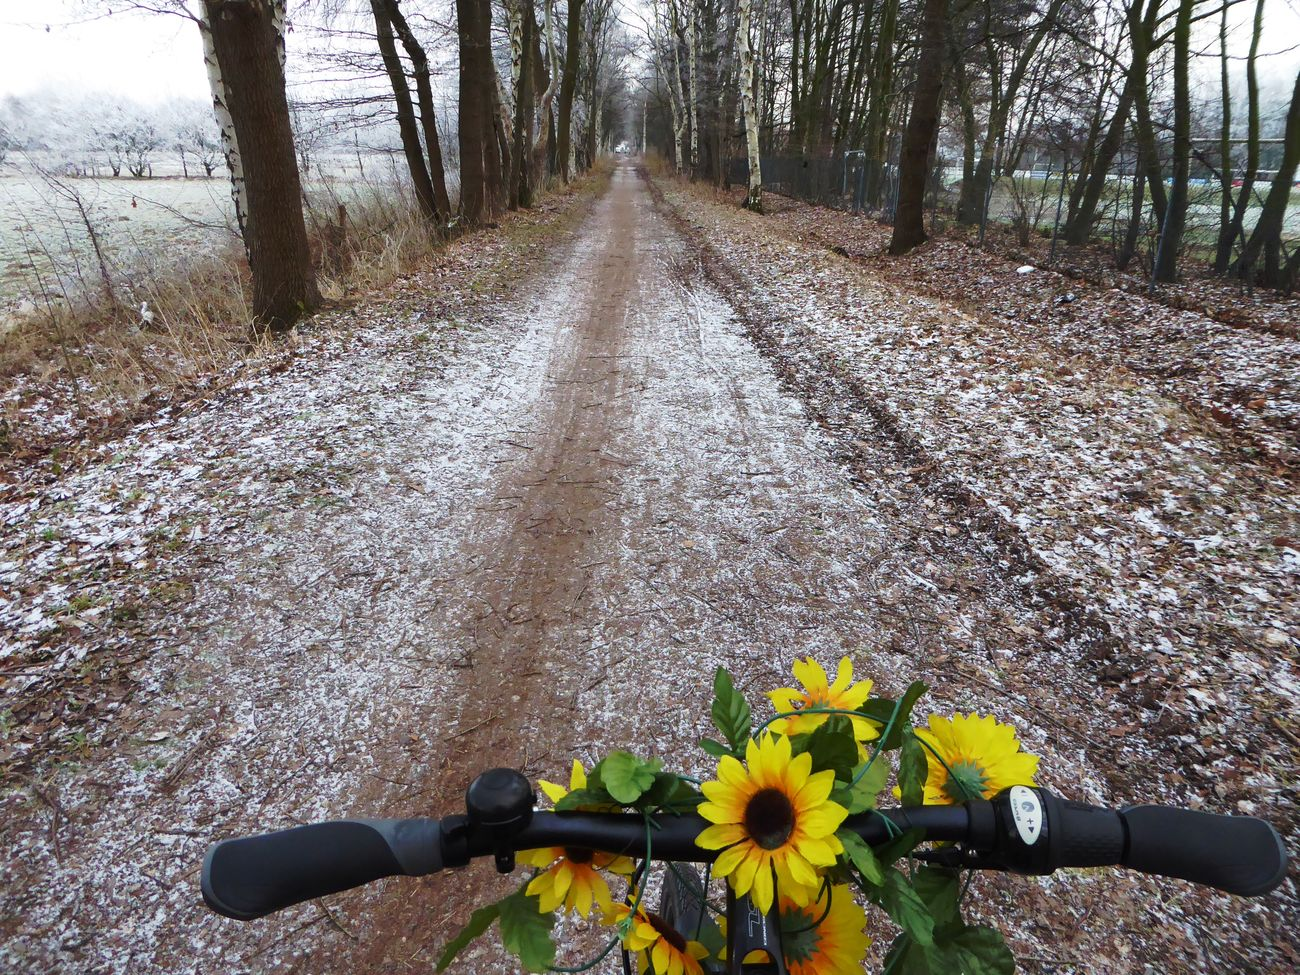 On My Way To Work Radlweg Beauty In My Every Day Life Wintertime ⛄ For My Friends 😍😘🎁 Beauty In Nature Brrrrrrrrr❄❄❄❄ Frosty ⛄ Frozen Ground Beauty In Nature beauty in winter Bicycling Enjoying The View Nature